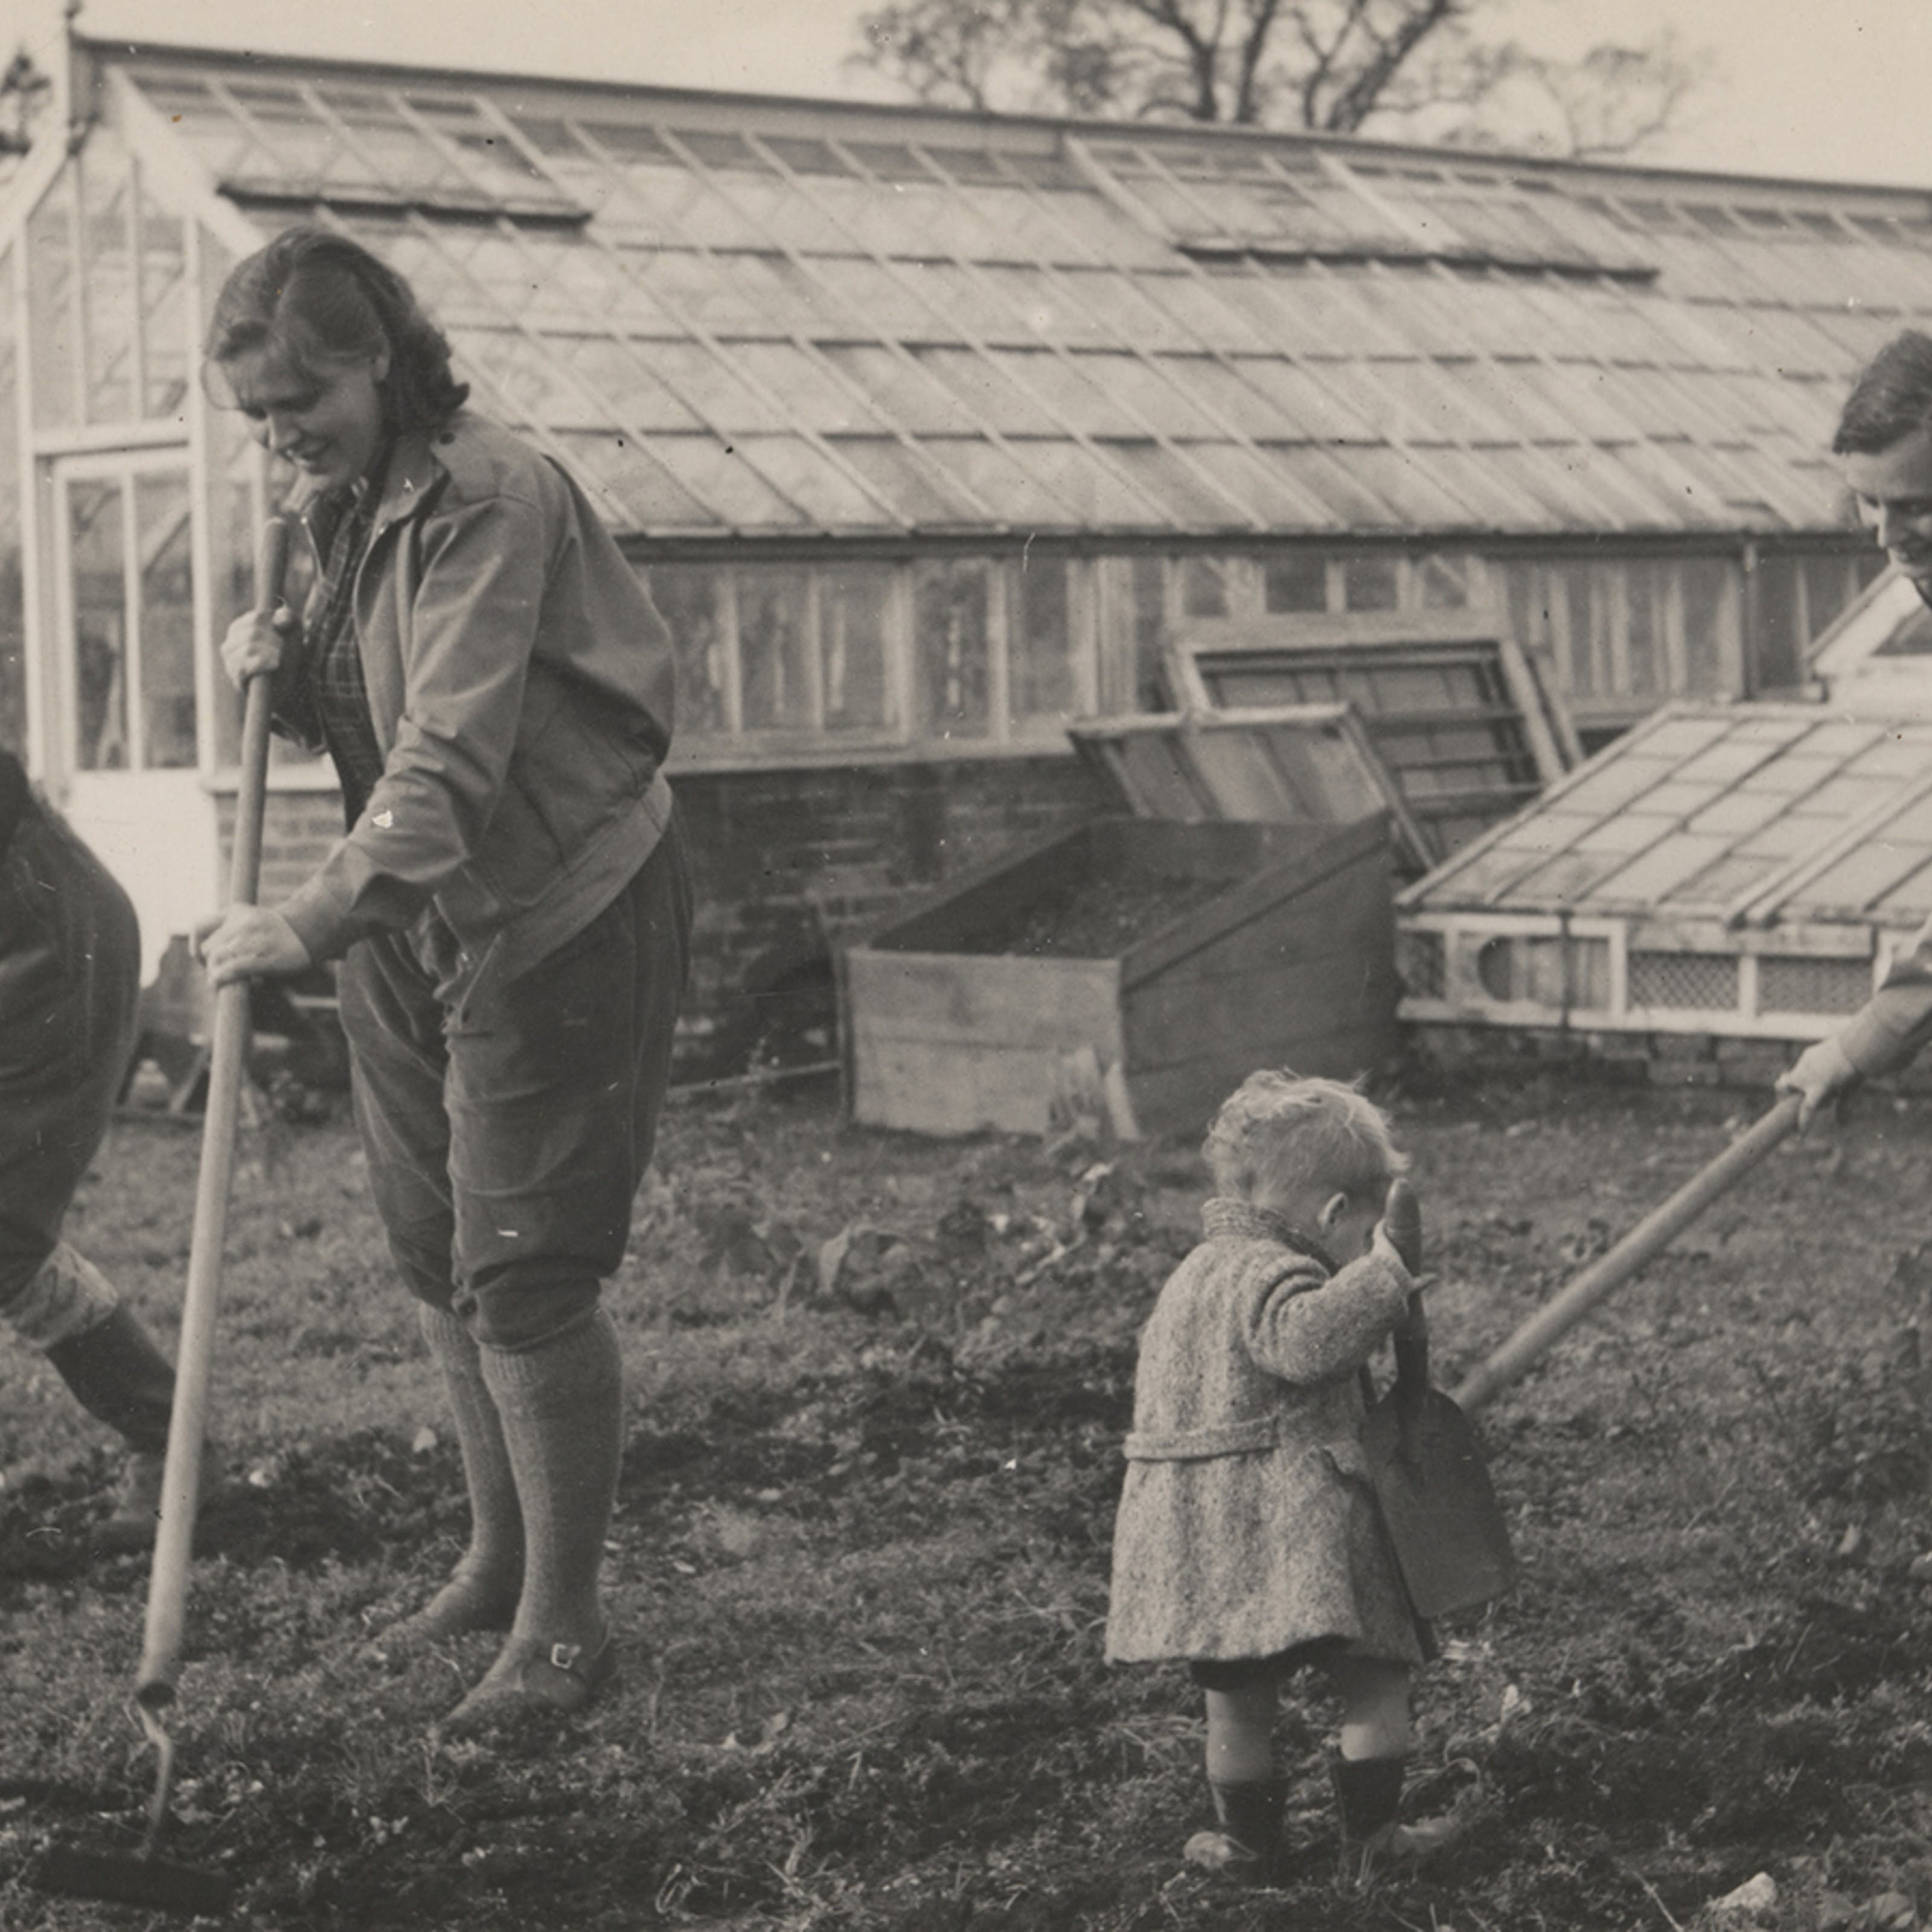 Black and white photograph showing three women hoeing some land, with a small child in the foreground holding a large trowel. Two large glasshouses stand behind them.